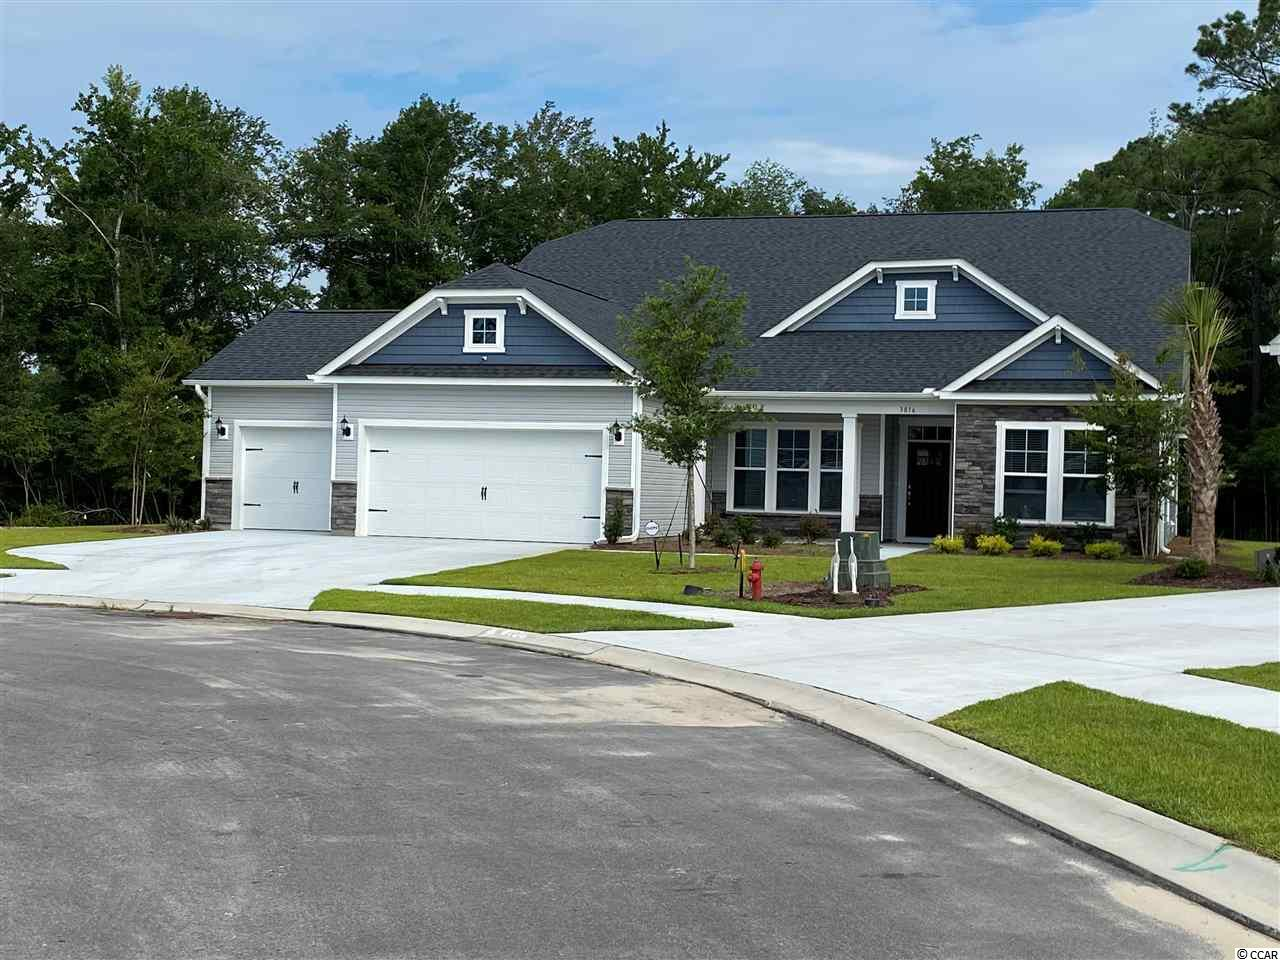 Park Pointe is Realstar Home's new Natural Gas Community.  Located across from the North Myrtle Beach Park and Sports Complex and just off the Robert Edge Parkway, Park Pointe is convenient to everything the north end of the Grand Strand has to offer. Surrounded by nature preserve, Park Pointe offers a tranquil, inviting backdrop for your new home.  Park Pointe allows easy access to major highways like Hwy 31, Hwy 90, Hwy 17 and N. Myrtle Beach's Main Street. You can live minutes to beautiful beaches, fabulous shopping, championship golf, great restaurants, amazing night-life, first-class medical facilities and other local attractions...in other words, it's everything you're looking for in a Coastal Carolina location.  With 13 open and uniquely designed plans ranging from 1360 heated sq. ft. to over 3000 heated sq. ft., these well-appointed homes offer a tremendous selection of options.  Next door you'll find the North Myrtle Beach Park and Sports Complex.  The park is equipped with a wide selection of amenities that will add value, fun, and comfort such as concessions, picnic shelters, playgrounds, an amphitheater, walking/bike trails, dog parks, a 25 acre lake for water activities, a 10 acre meadow and much more.  Enjoy everything that North Myrtle Beach and Little River has to offer when you make Park Pointe your place to make memories happen.